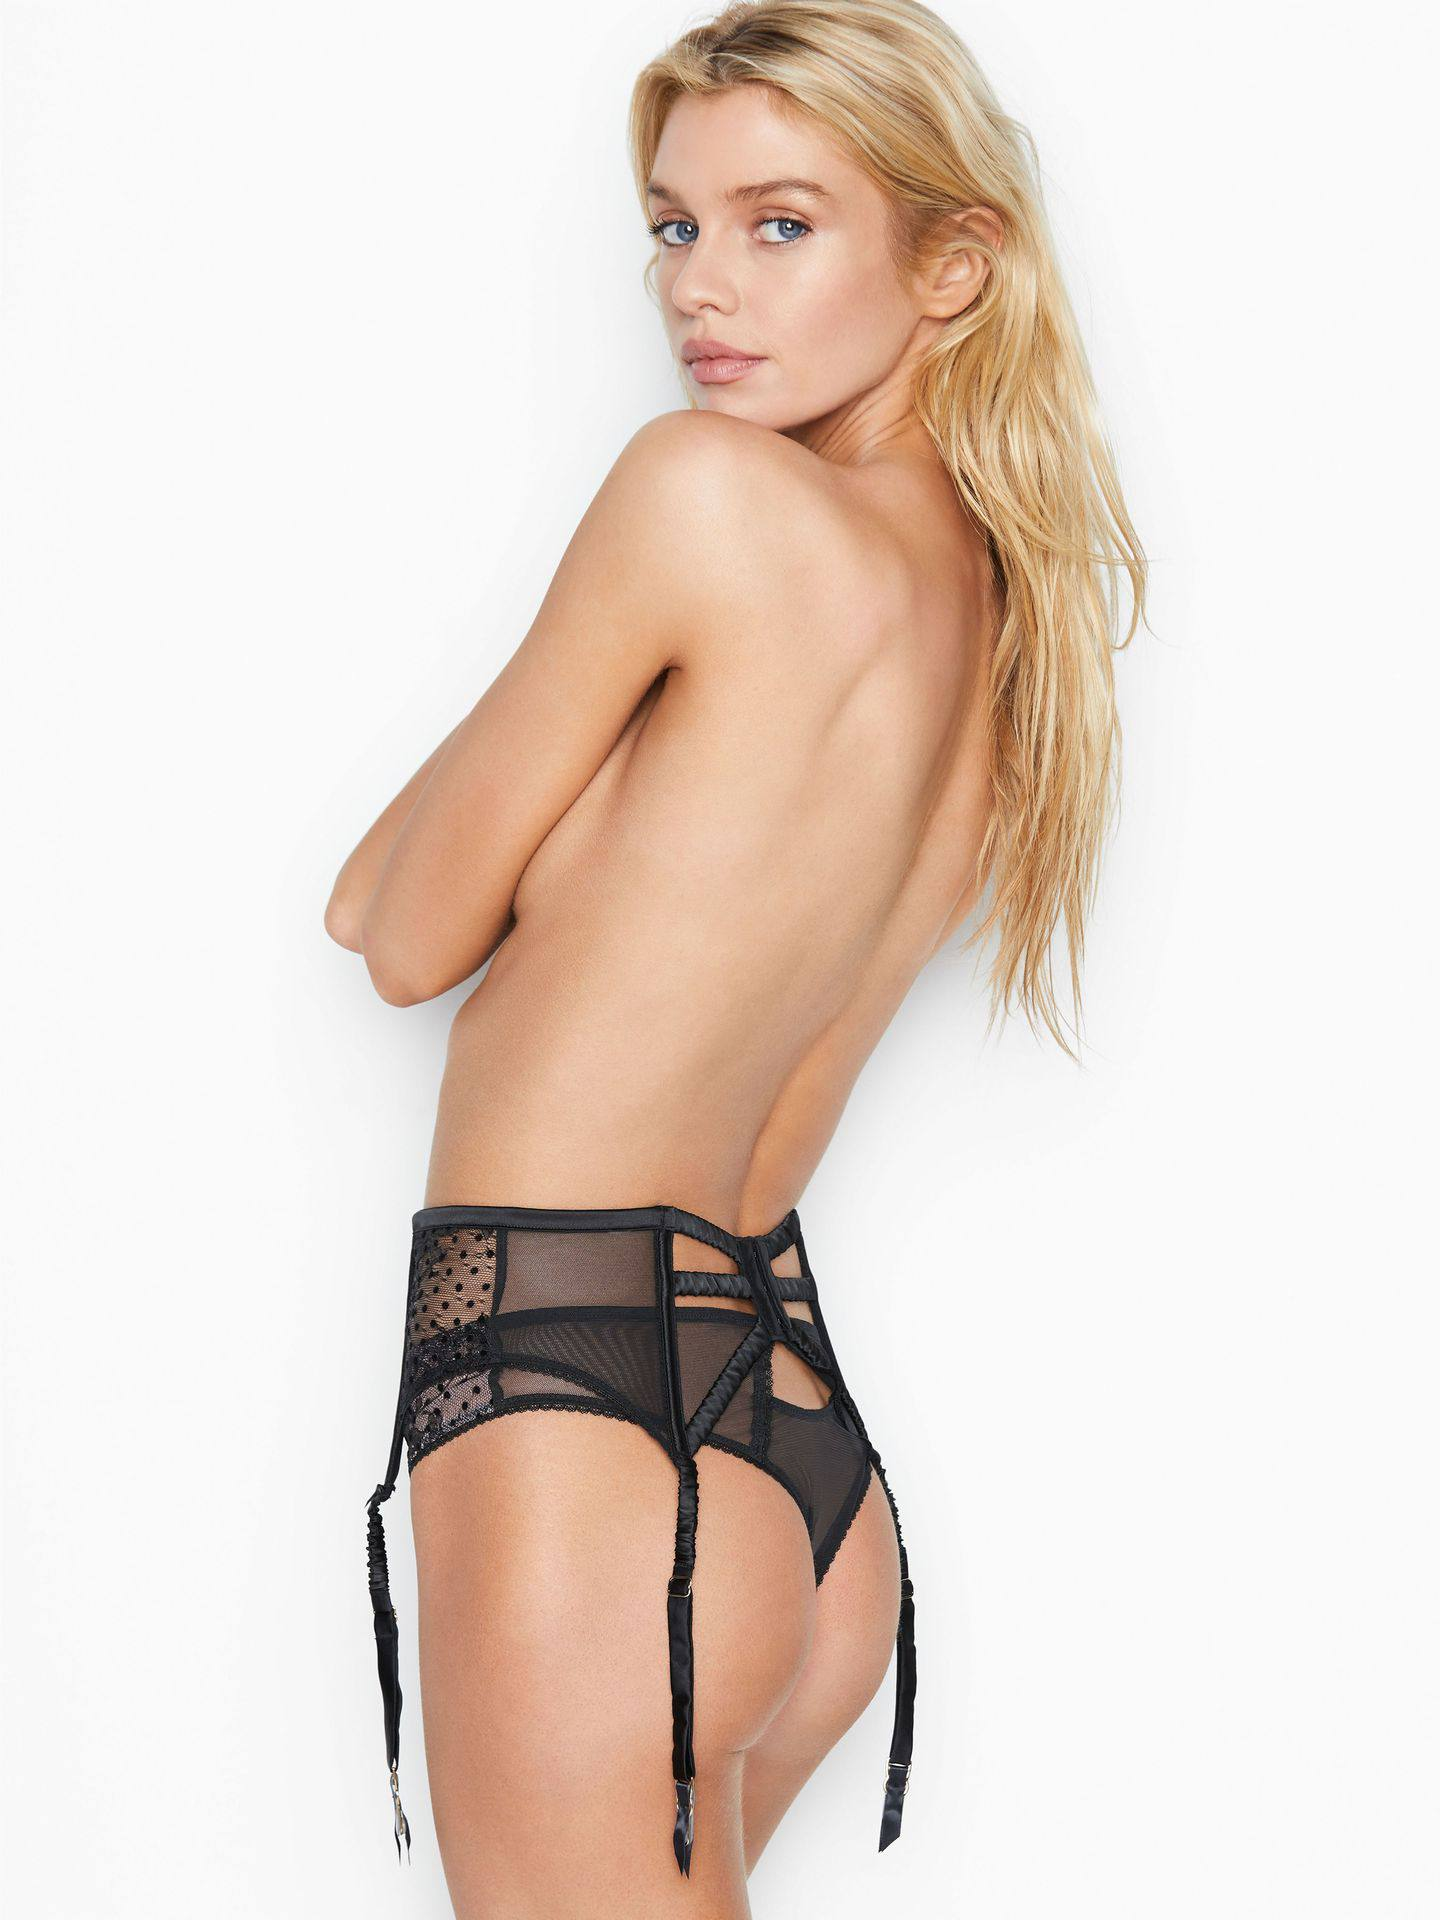 Stella Maxwell Ass in Victoria's Secret Photoshoot - March 2020